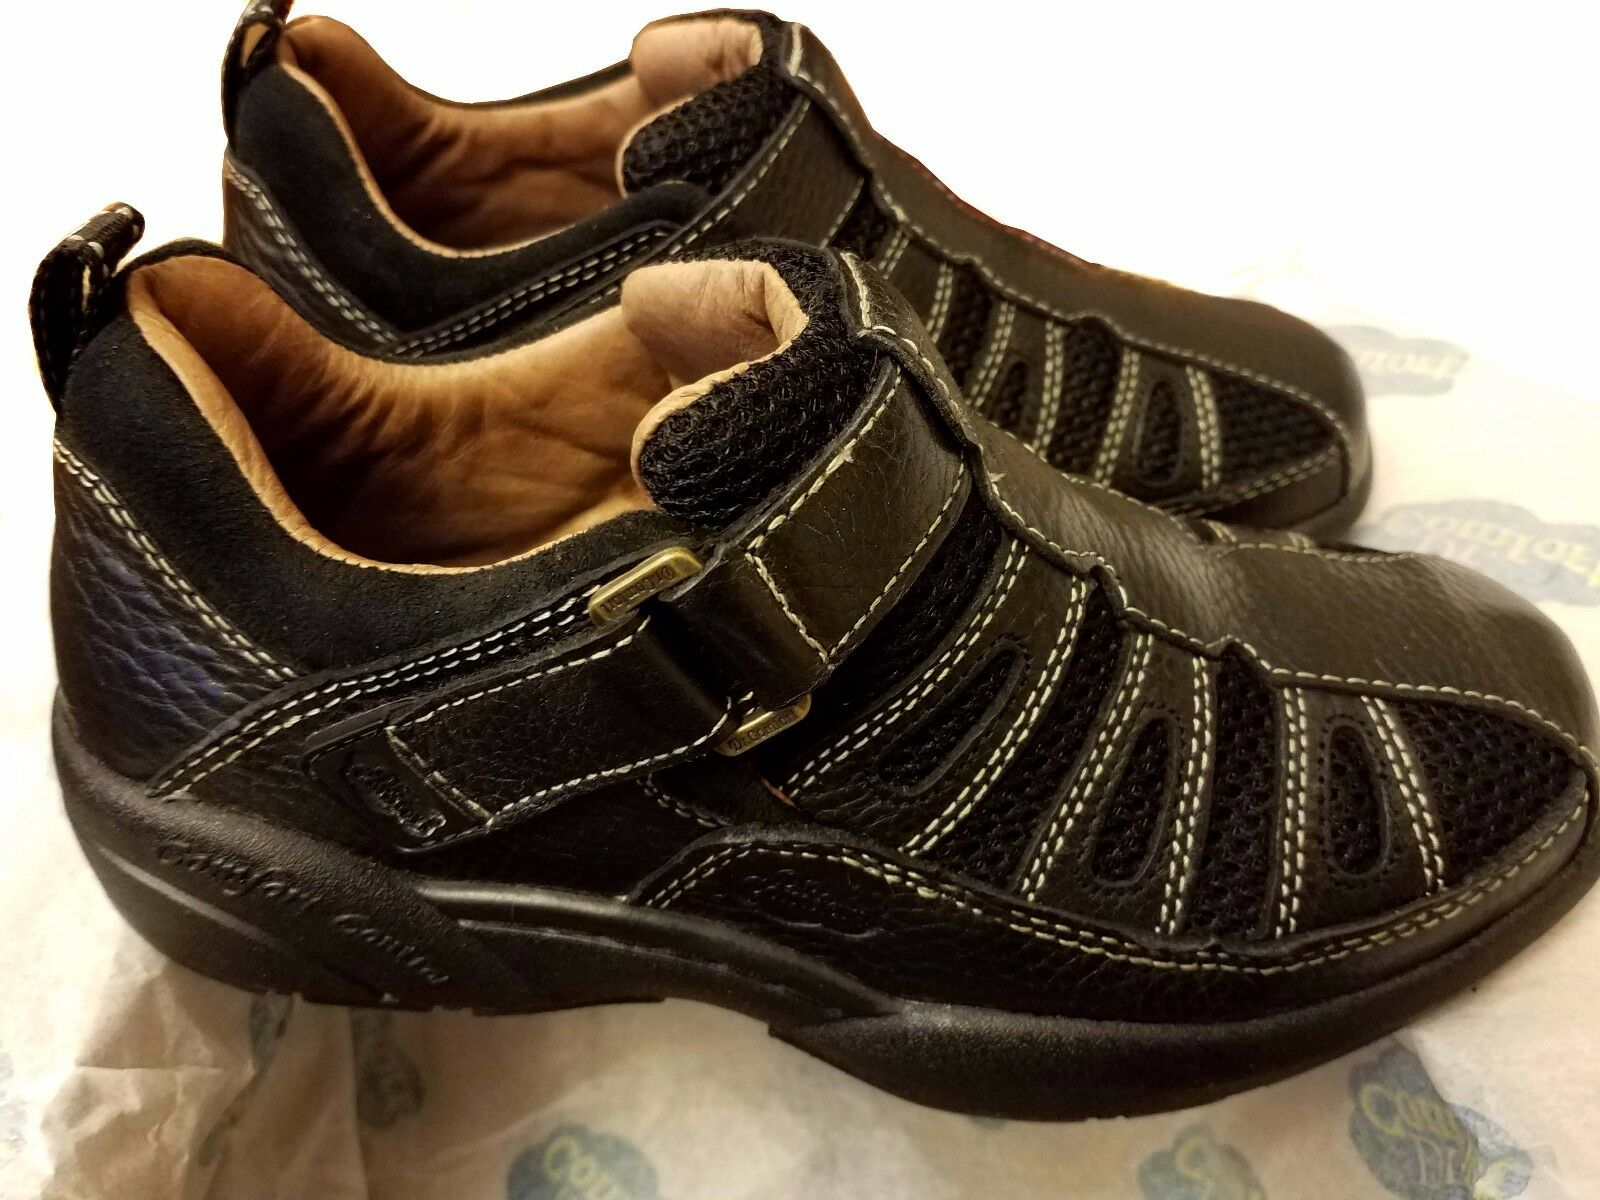 5c2a47802a334d Dr. Comfort Genuine Genuine Genuine Leather Men s shoes BEACH COMBER Black  Multiple Sizes NIB a11520 ...